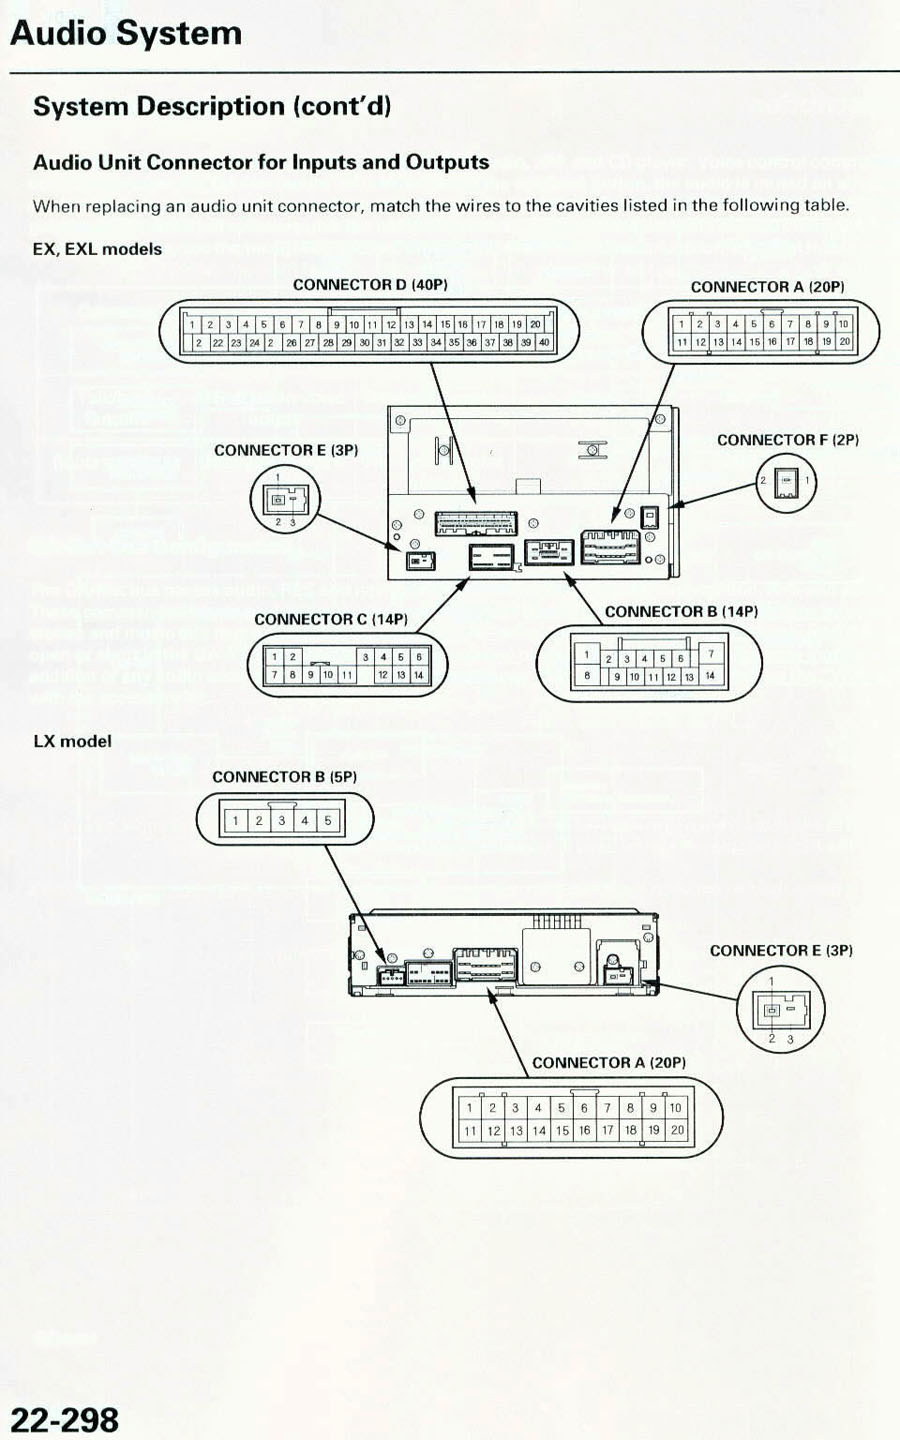 32969d1200063279 re factory subwoofer aftermarket hu audio_connector 2006 re factory subwoofer and aftermarket hu honda pilot honda 2004 honda pilot wiring diagram at fashall.co